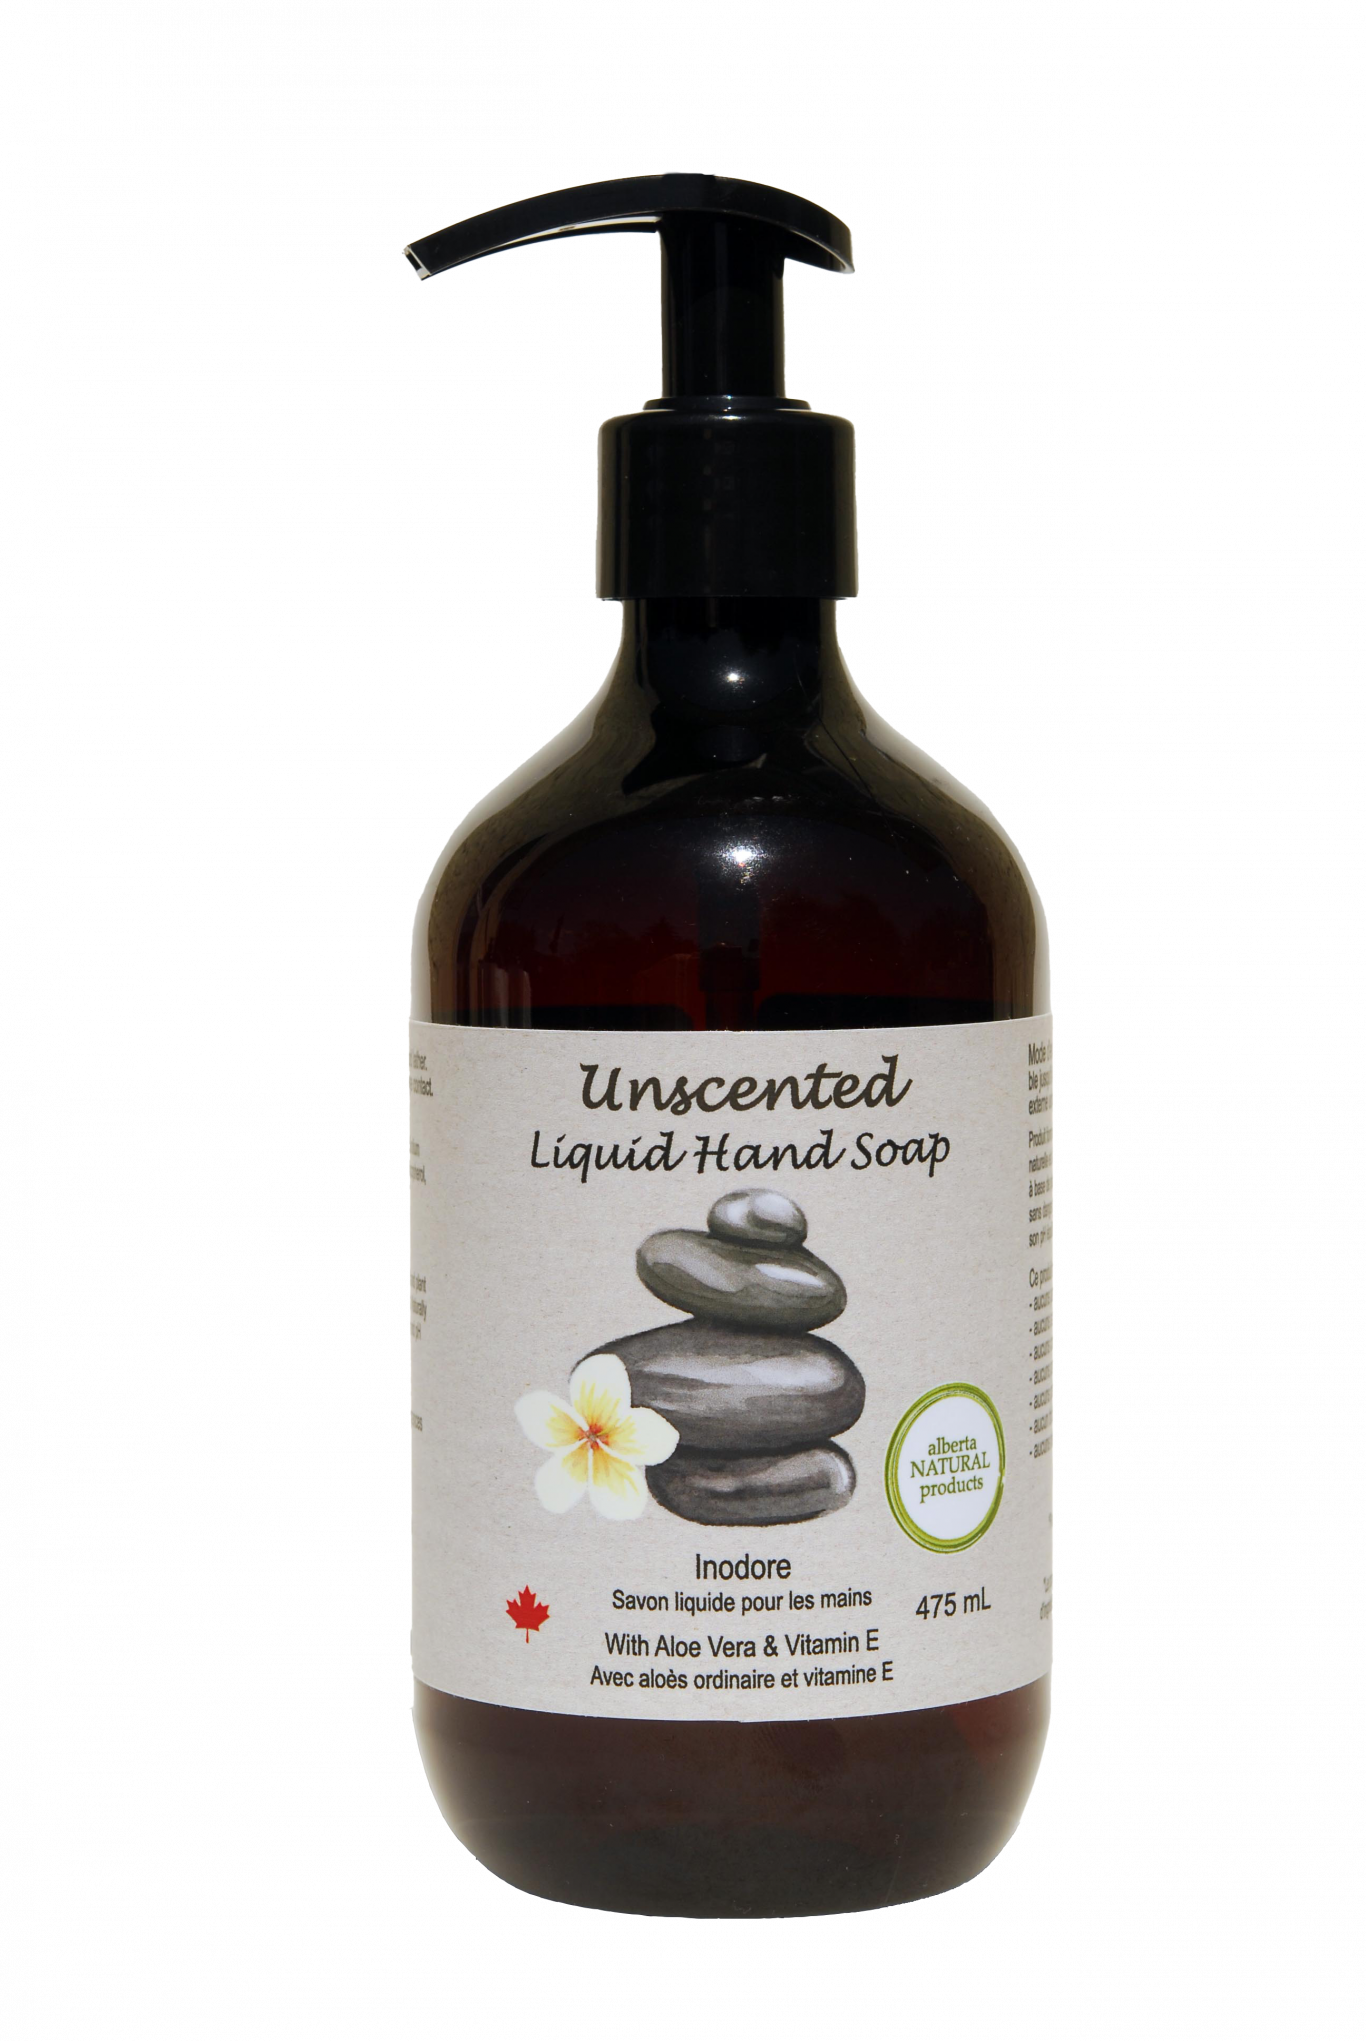 Unscented.